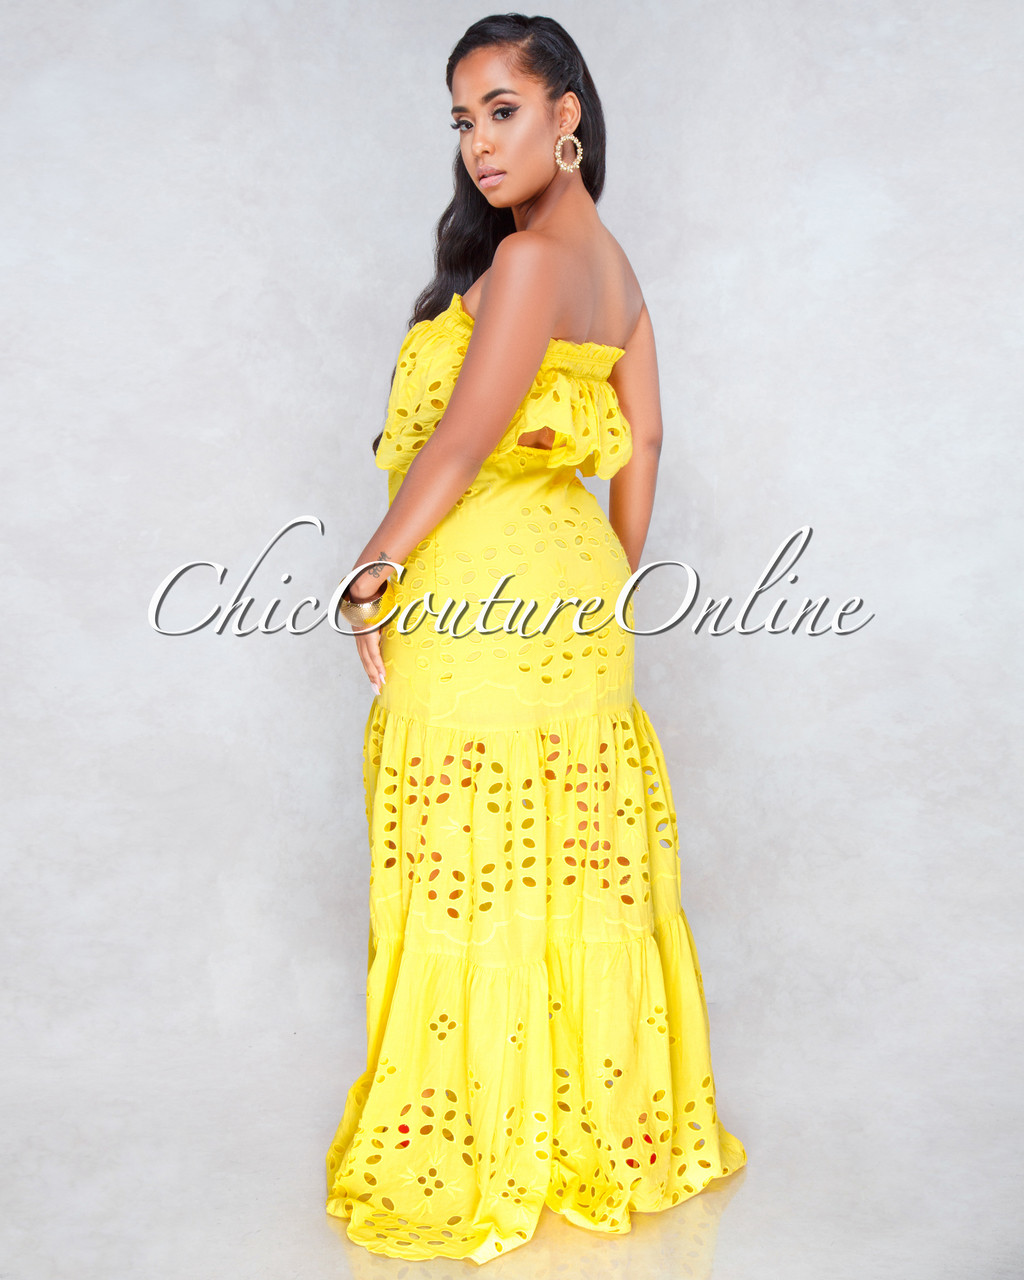 2d865a03c975 Calvin Yellow Eyelet Two Piece Maxi Skirt Set. Price: $130.00. or 4  interest-free installments of $32.50 by Afterpay ⓘ. Image 1. Larger / More  Photos